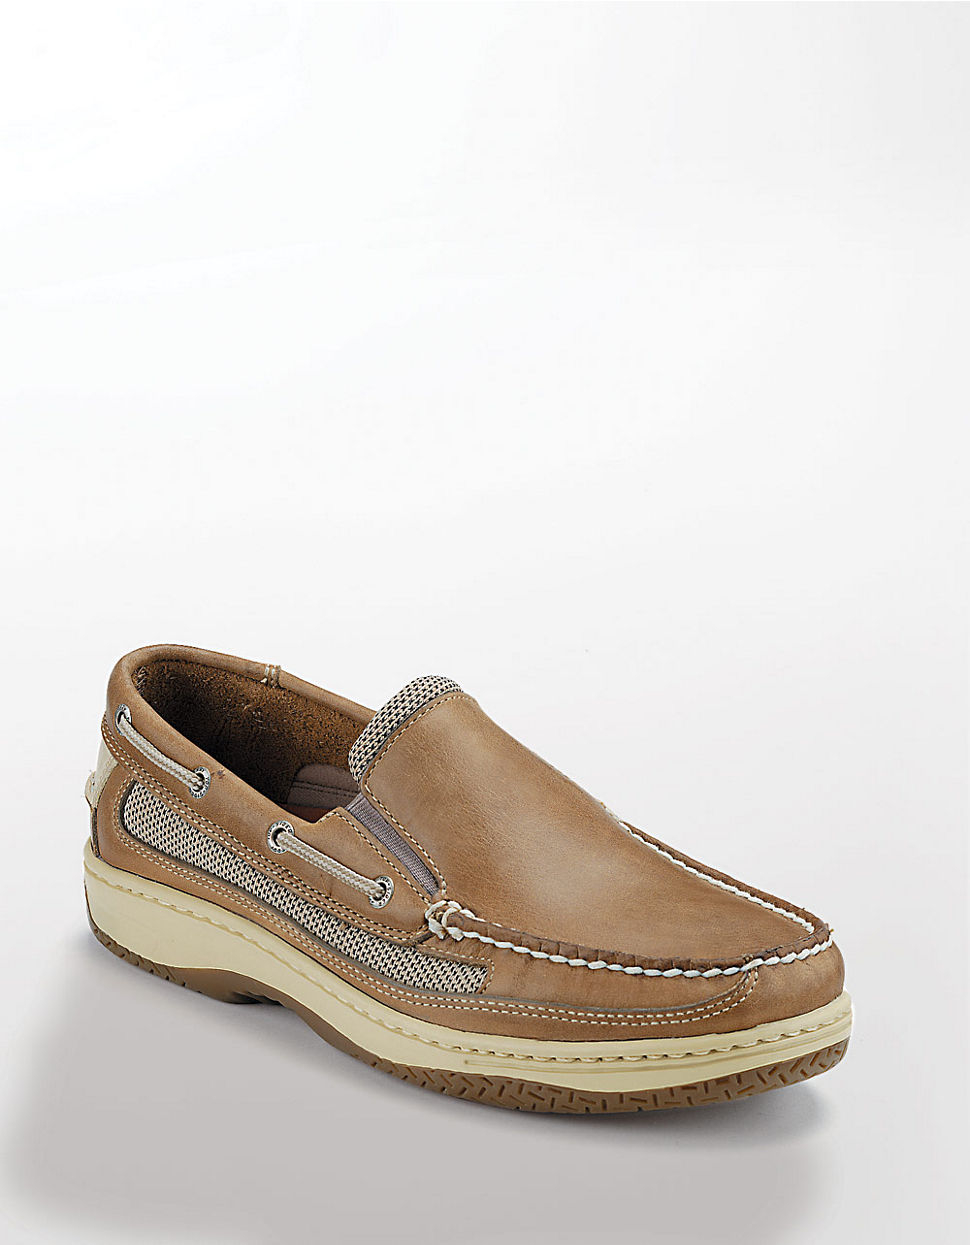 Sperry Billfish Leather Slip On Shoes